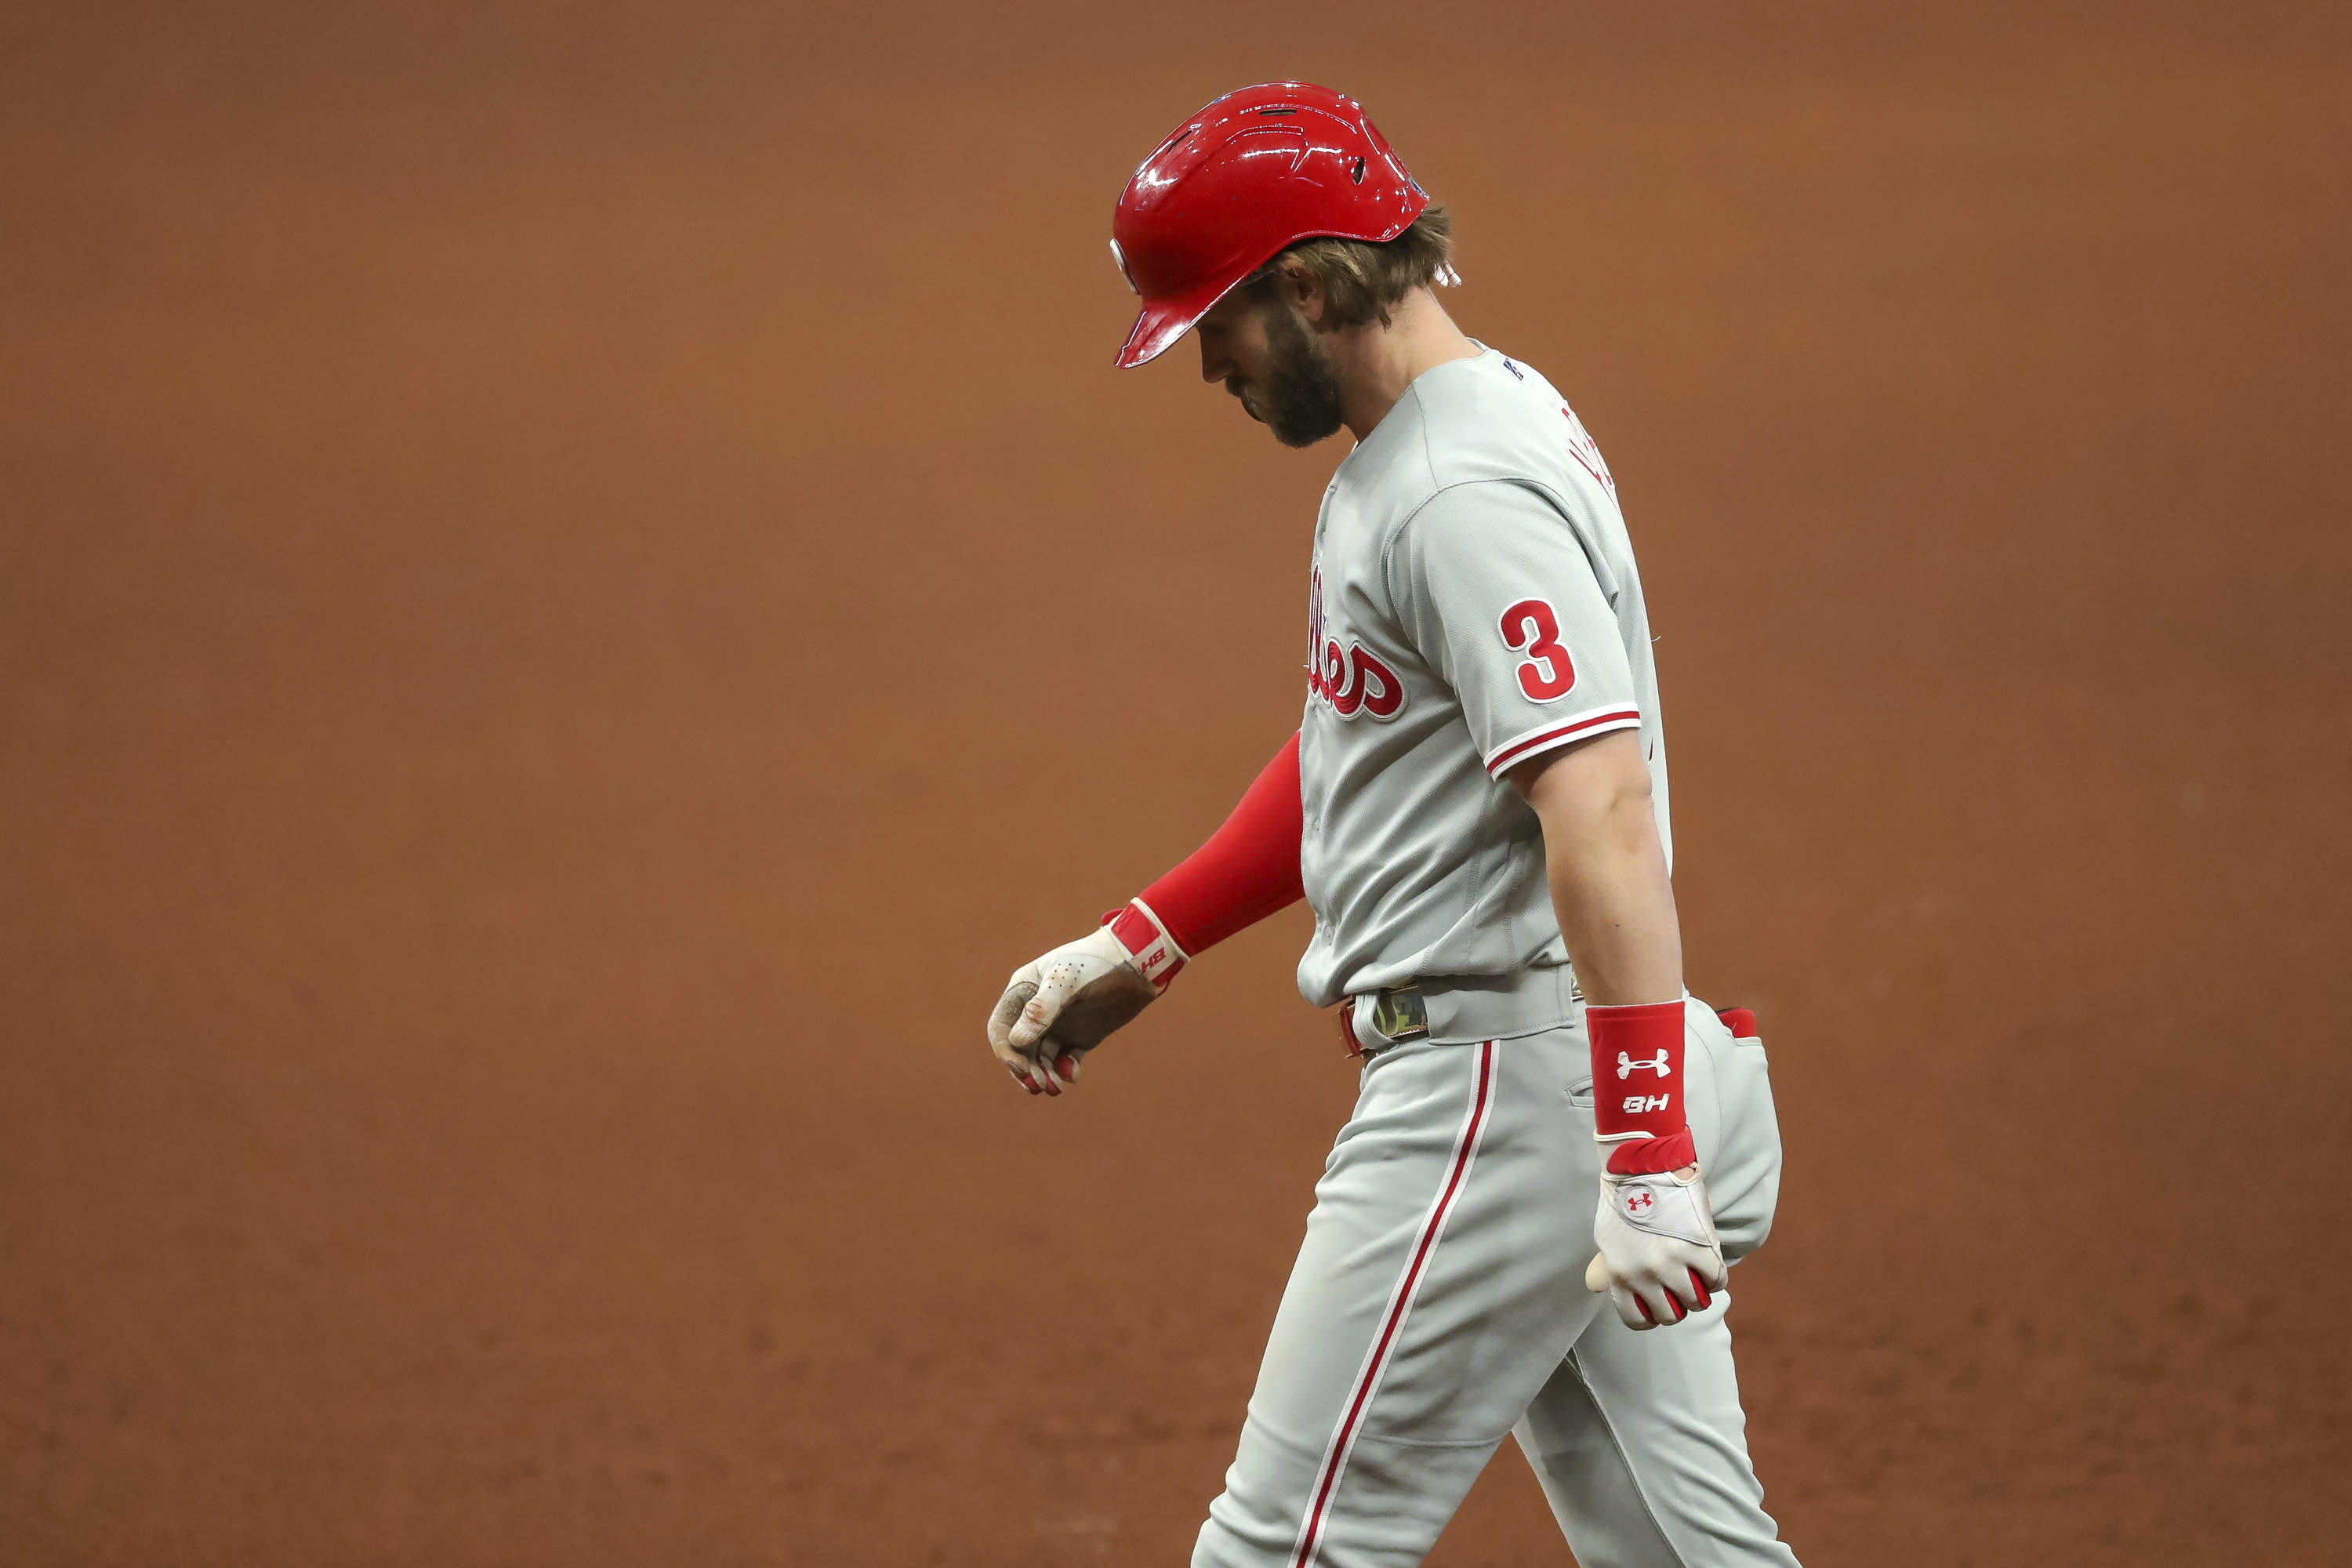 Philadelphia Phillies' Bryce Harper reacts after grounding out against the Tampa Bay Rays during the eighth inning of a baseball game Sunday, Sept. 27, 2020, in St. Petersburg, Fla. (AP Photo/Mike Carlson)